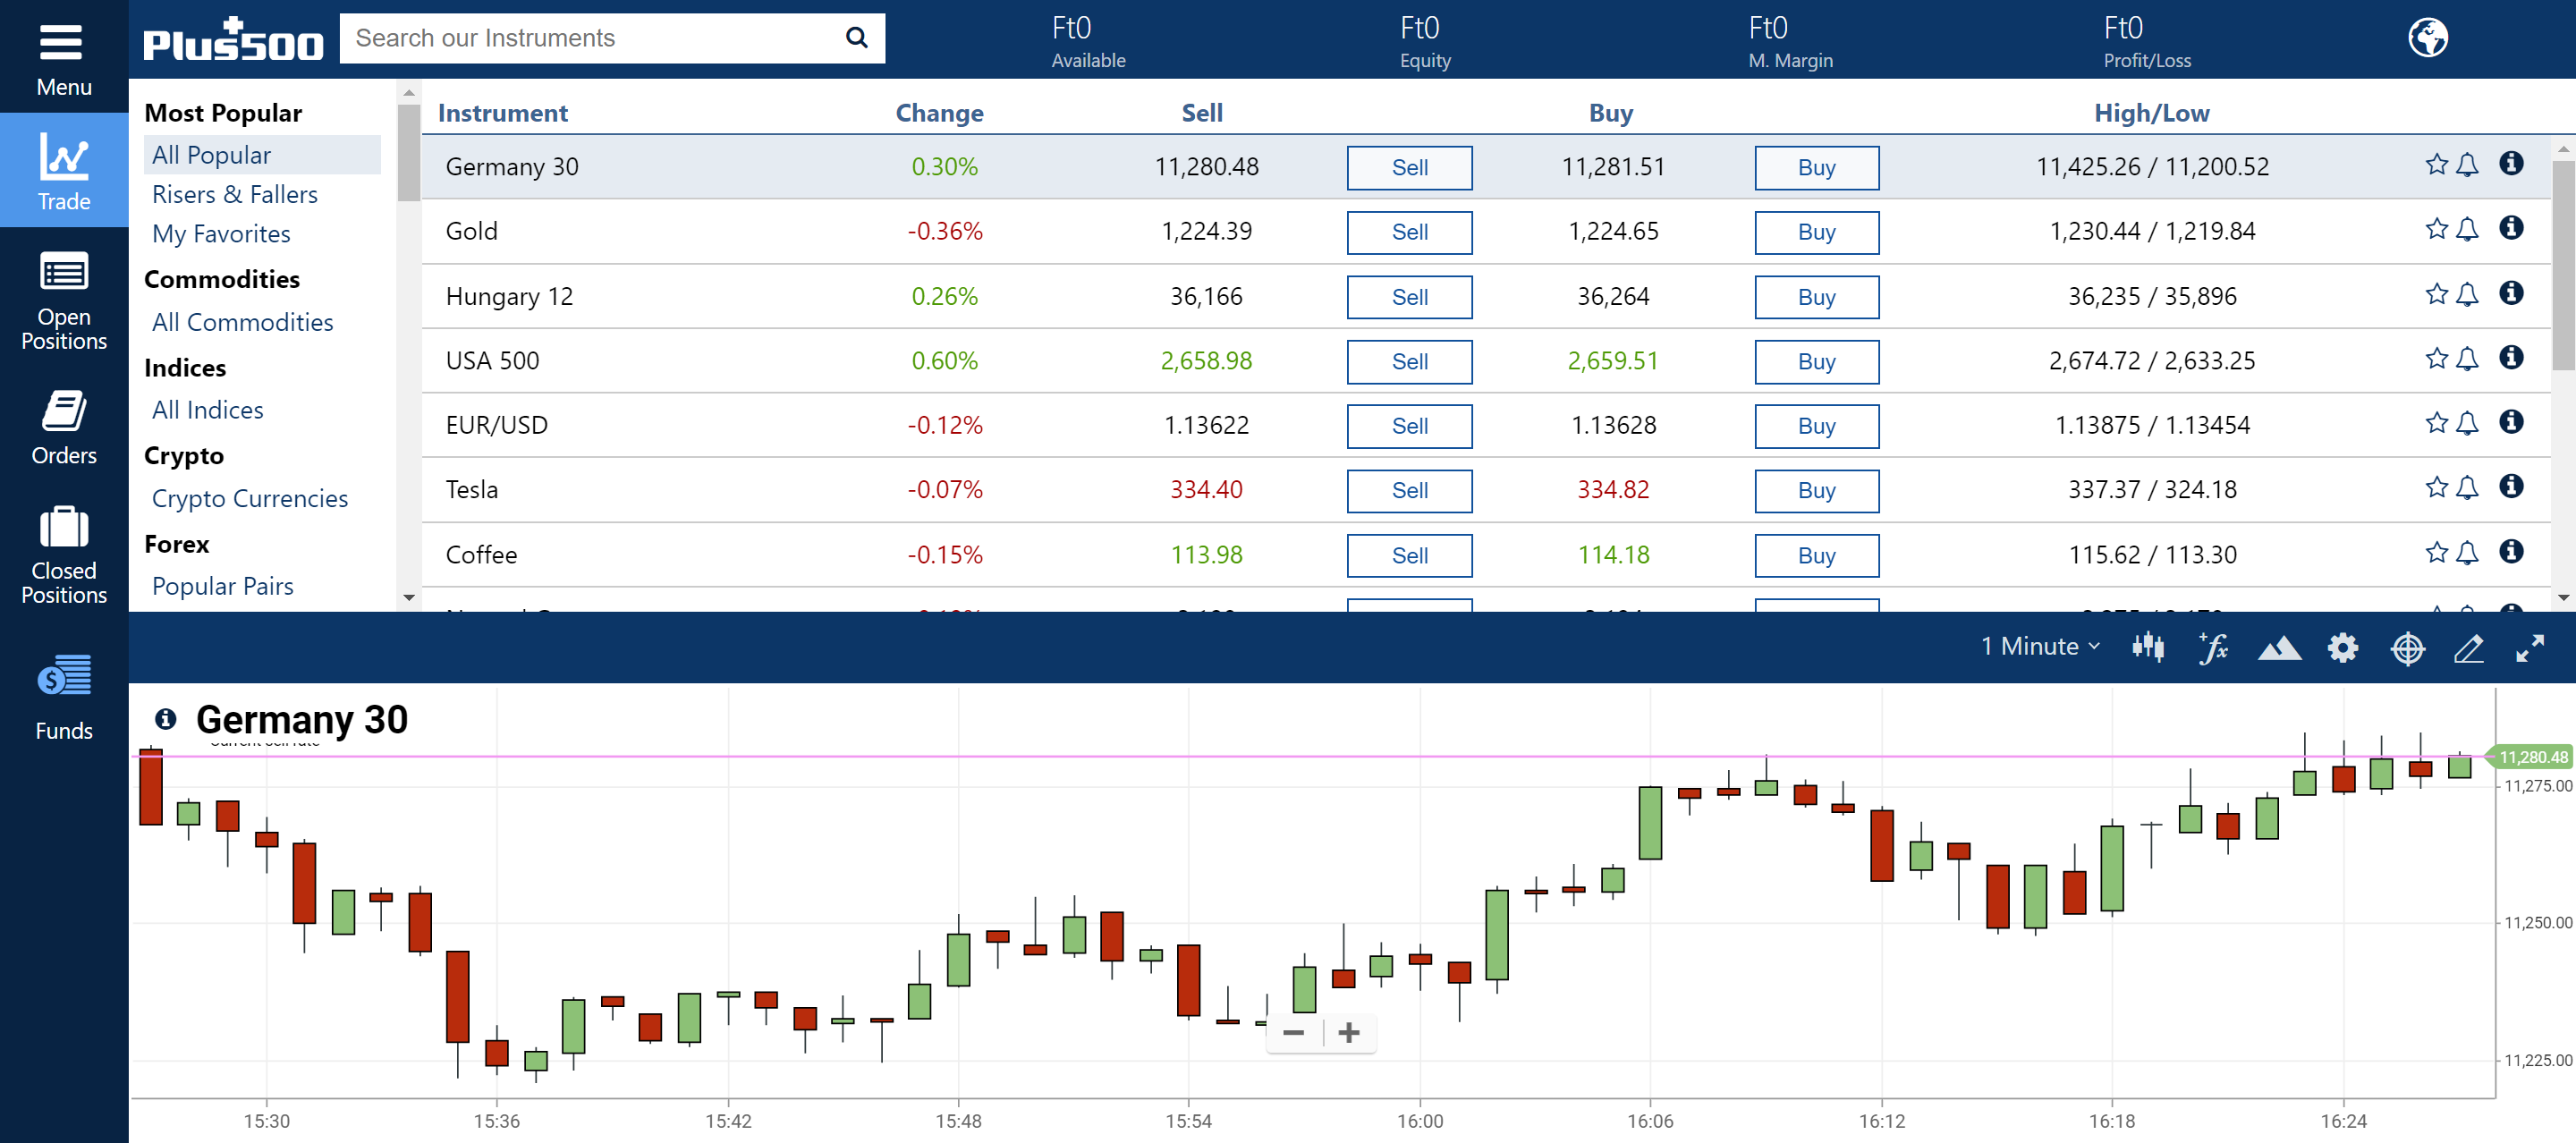 Web trading platform of Plus500, a eToro alternative